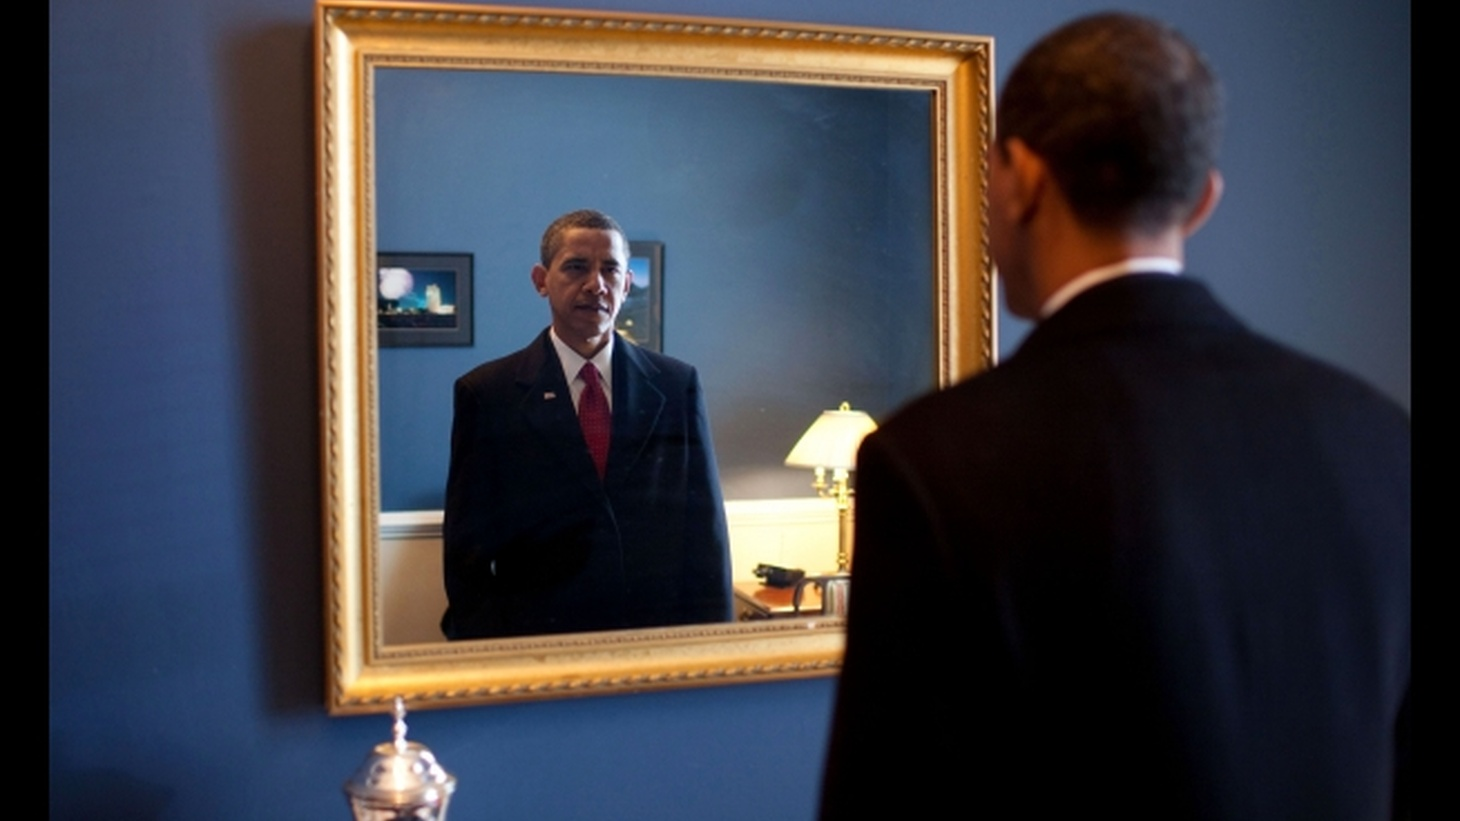 """Jan. 20, 2009 """"President-elect Barack Obama was about to walk out to take the oath of office. Backstage at the U.S. Capitol, he took one last look at his appearance in the mirror."""""""